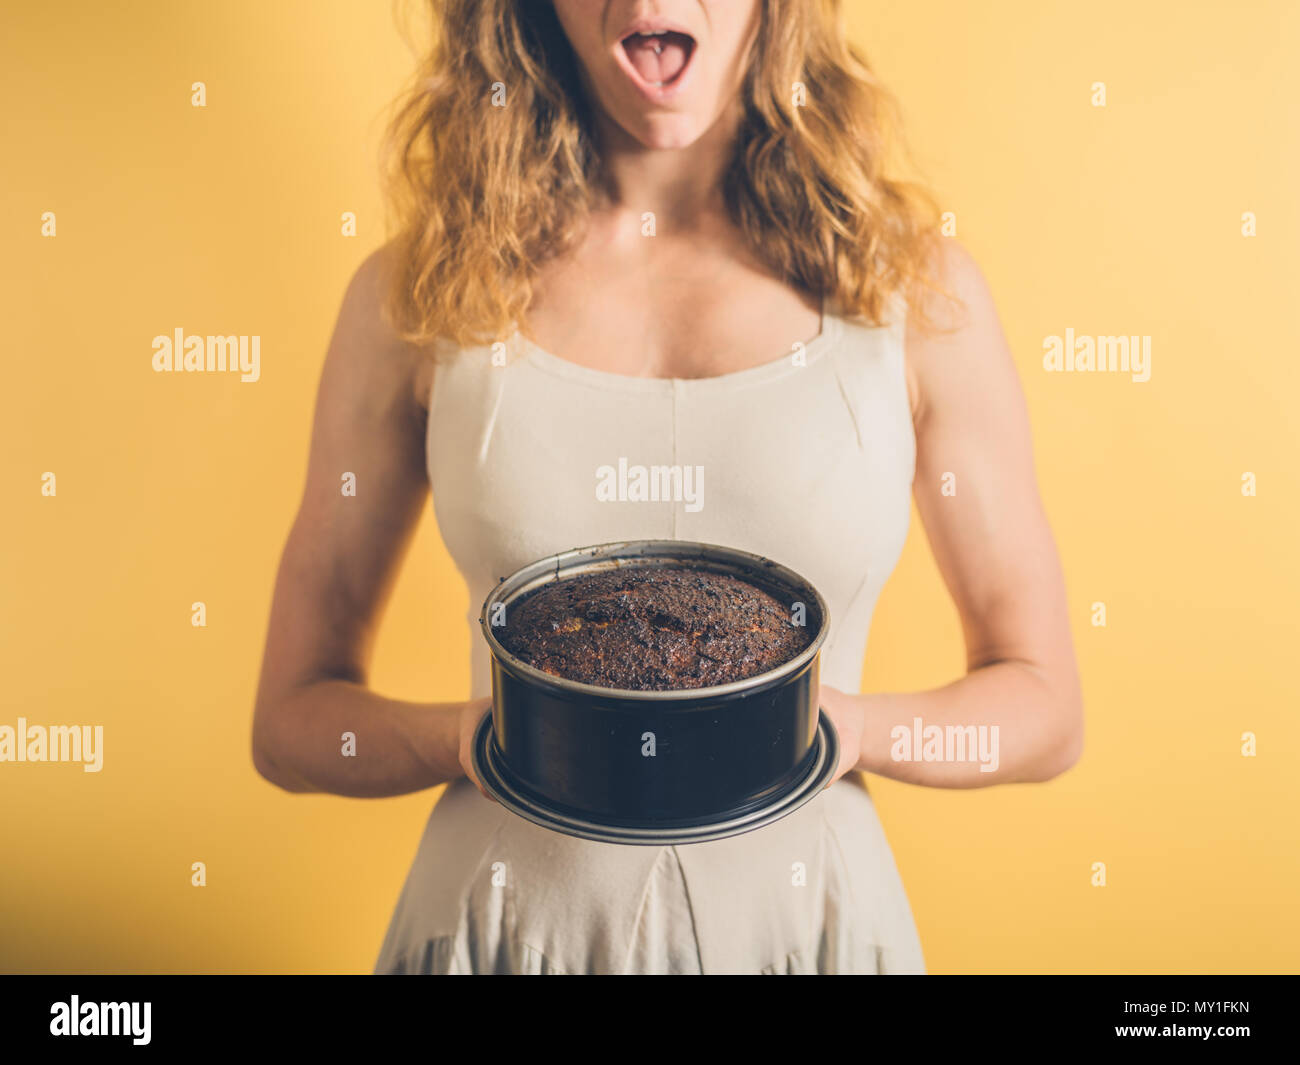 A surprised woman is holding a burnt cake - Stock Image